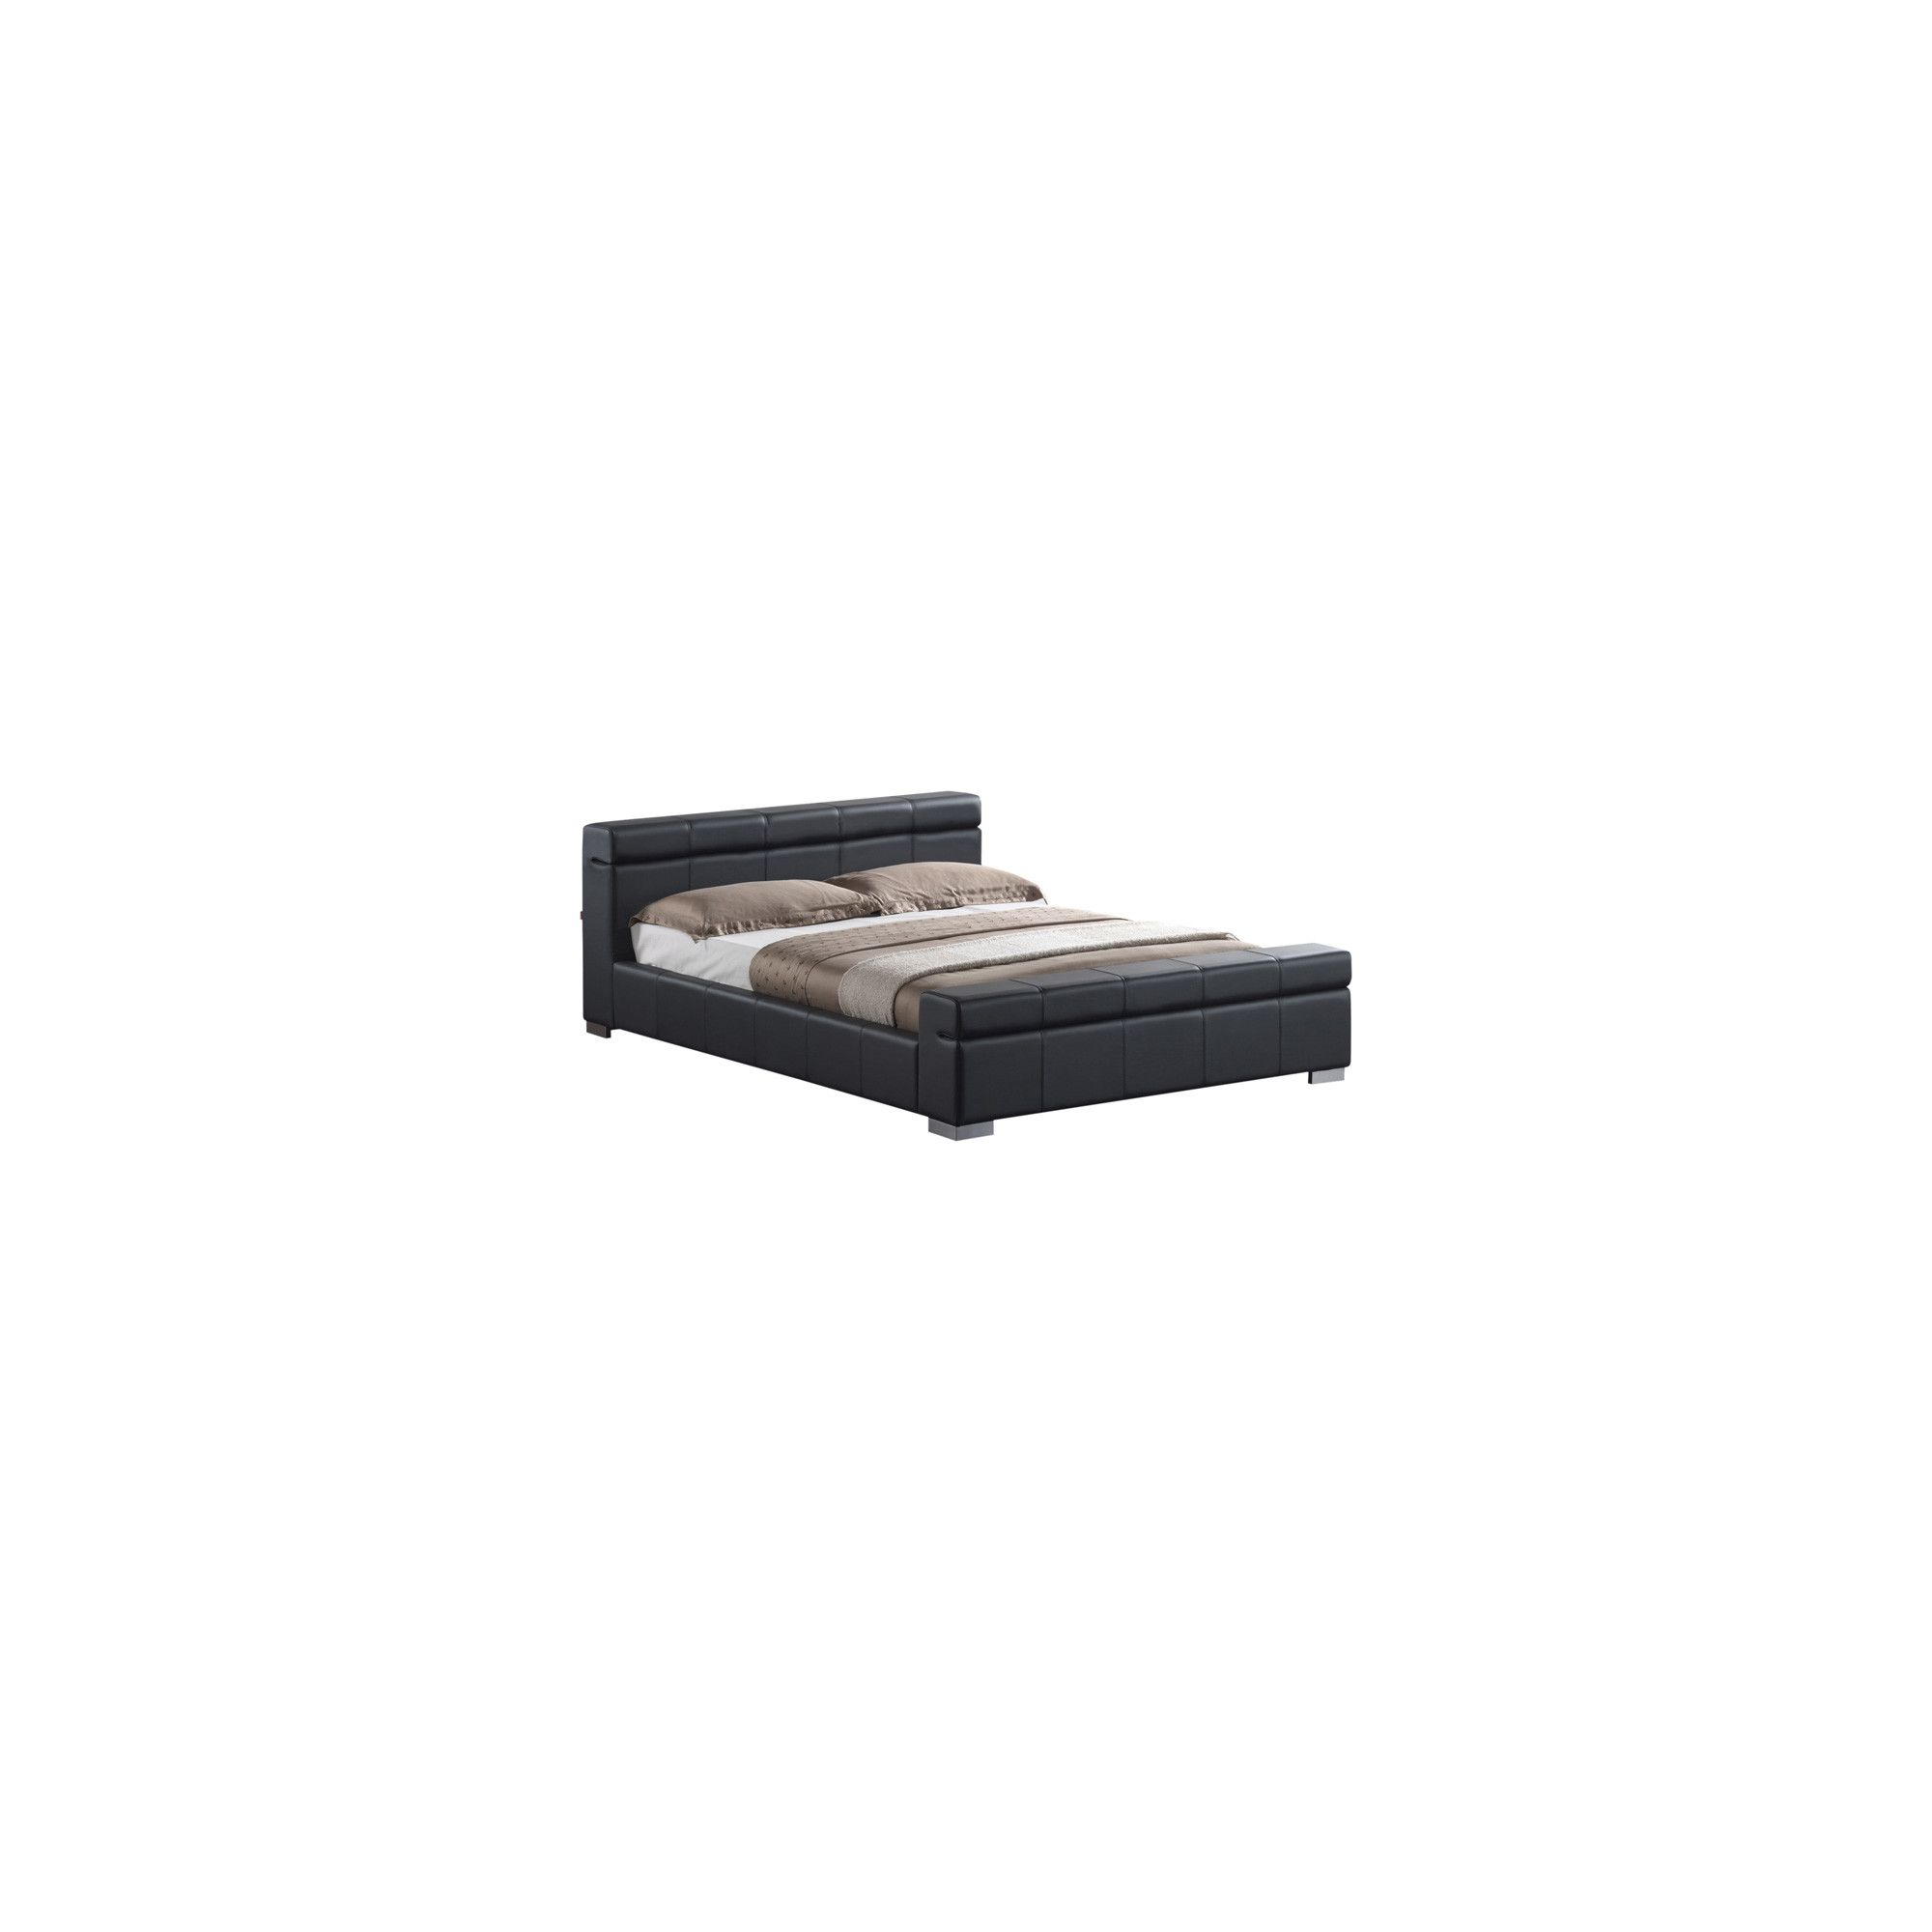 Altruna Durham Faux Leather Bed Frame - Double - Black at Tesco Direct